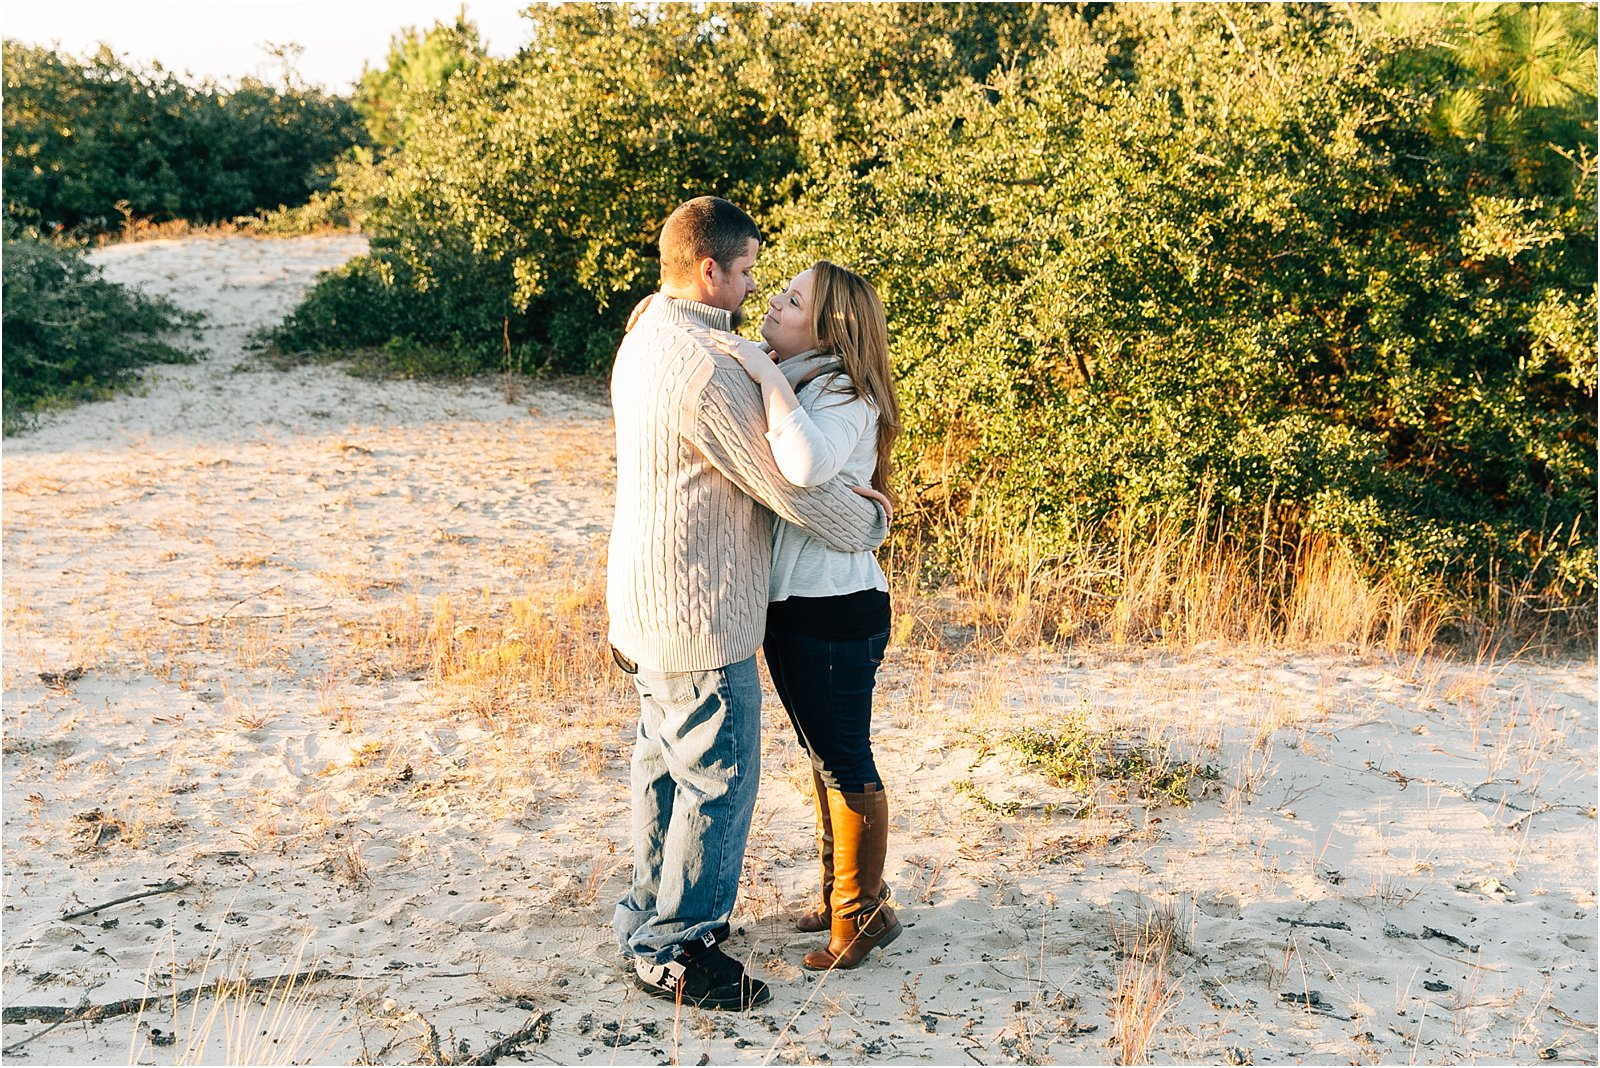 jessica_ryan_photography_pumpkin_patch_engagement_portraits_fall_october_engagements_virginia_beach_chesapeake_0321